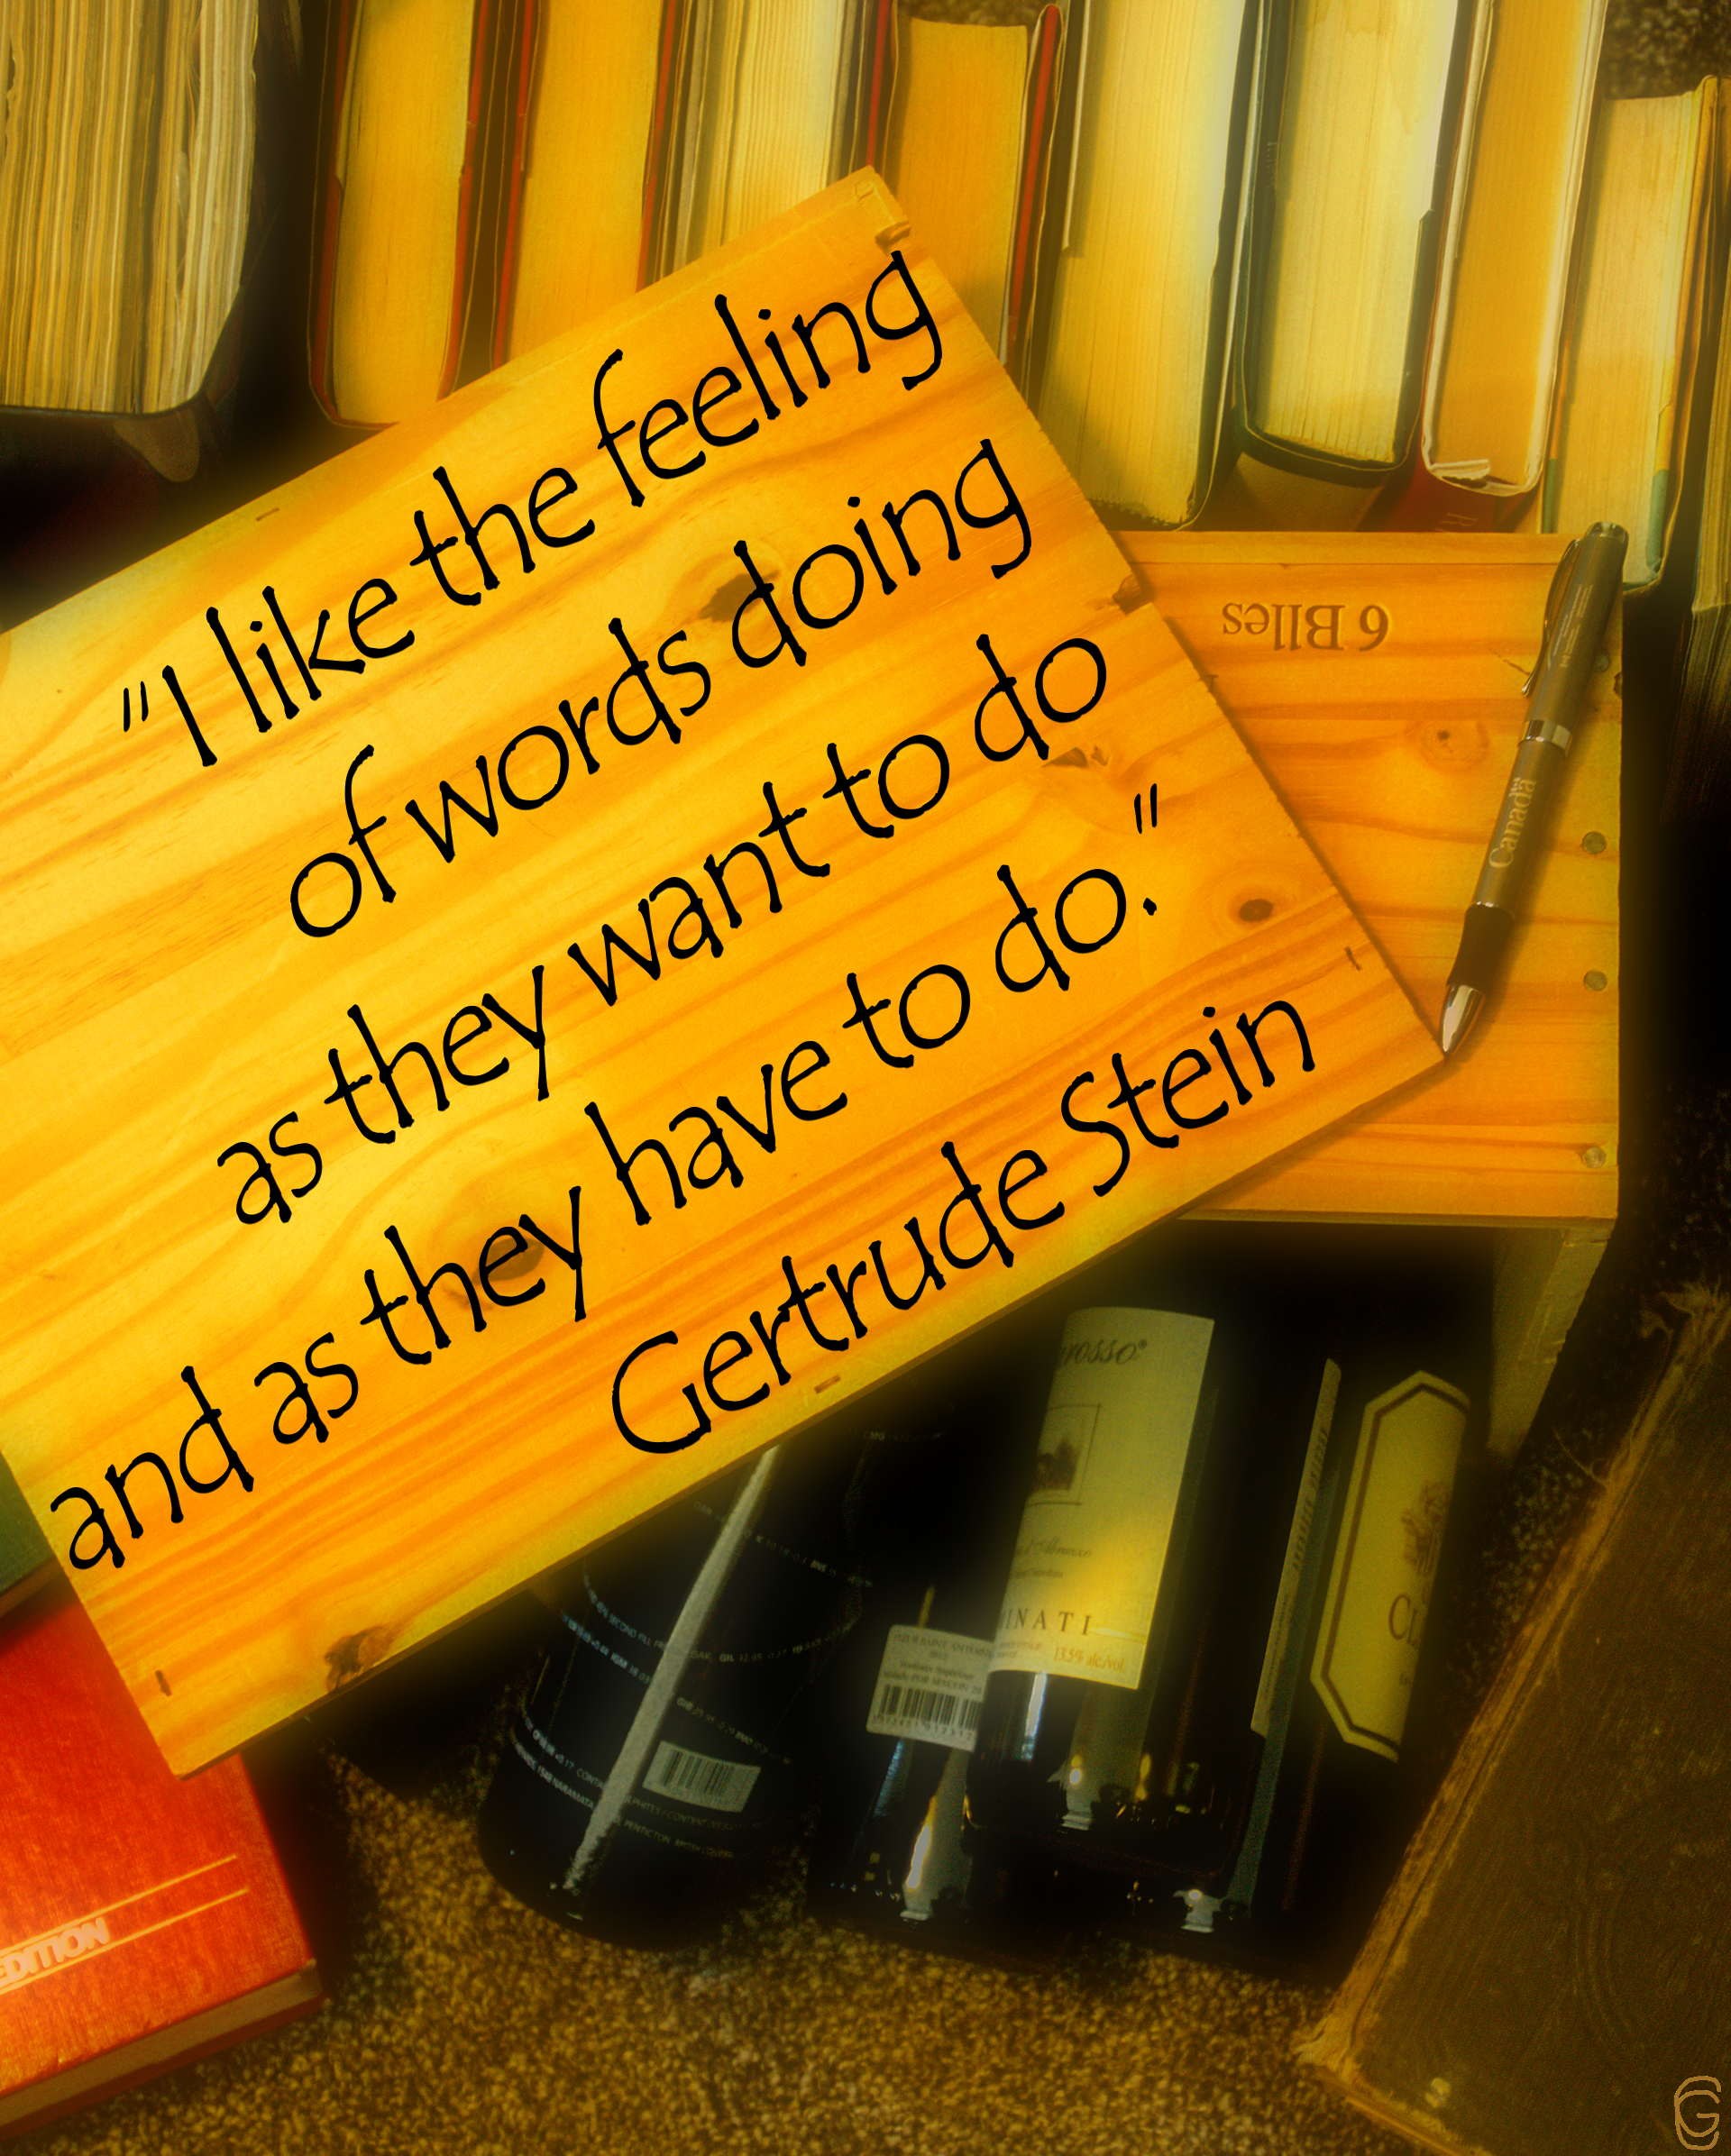 From Gertrude Stein quotes - Week of July 1st to July 5th